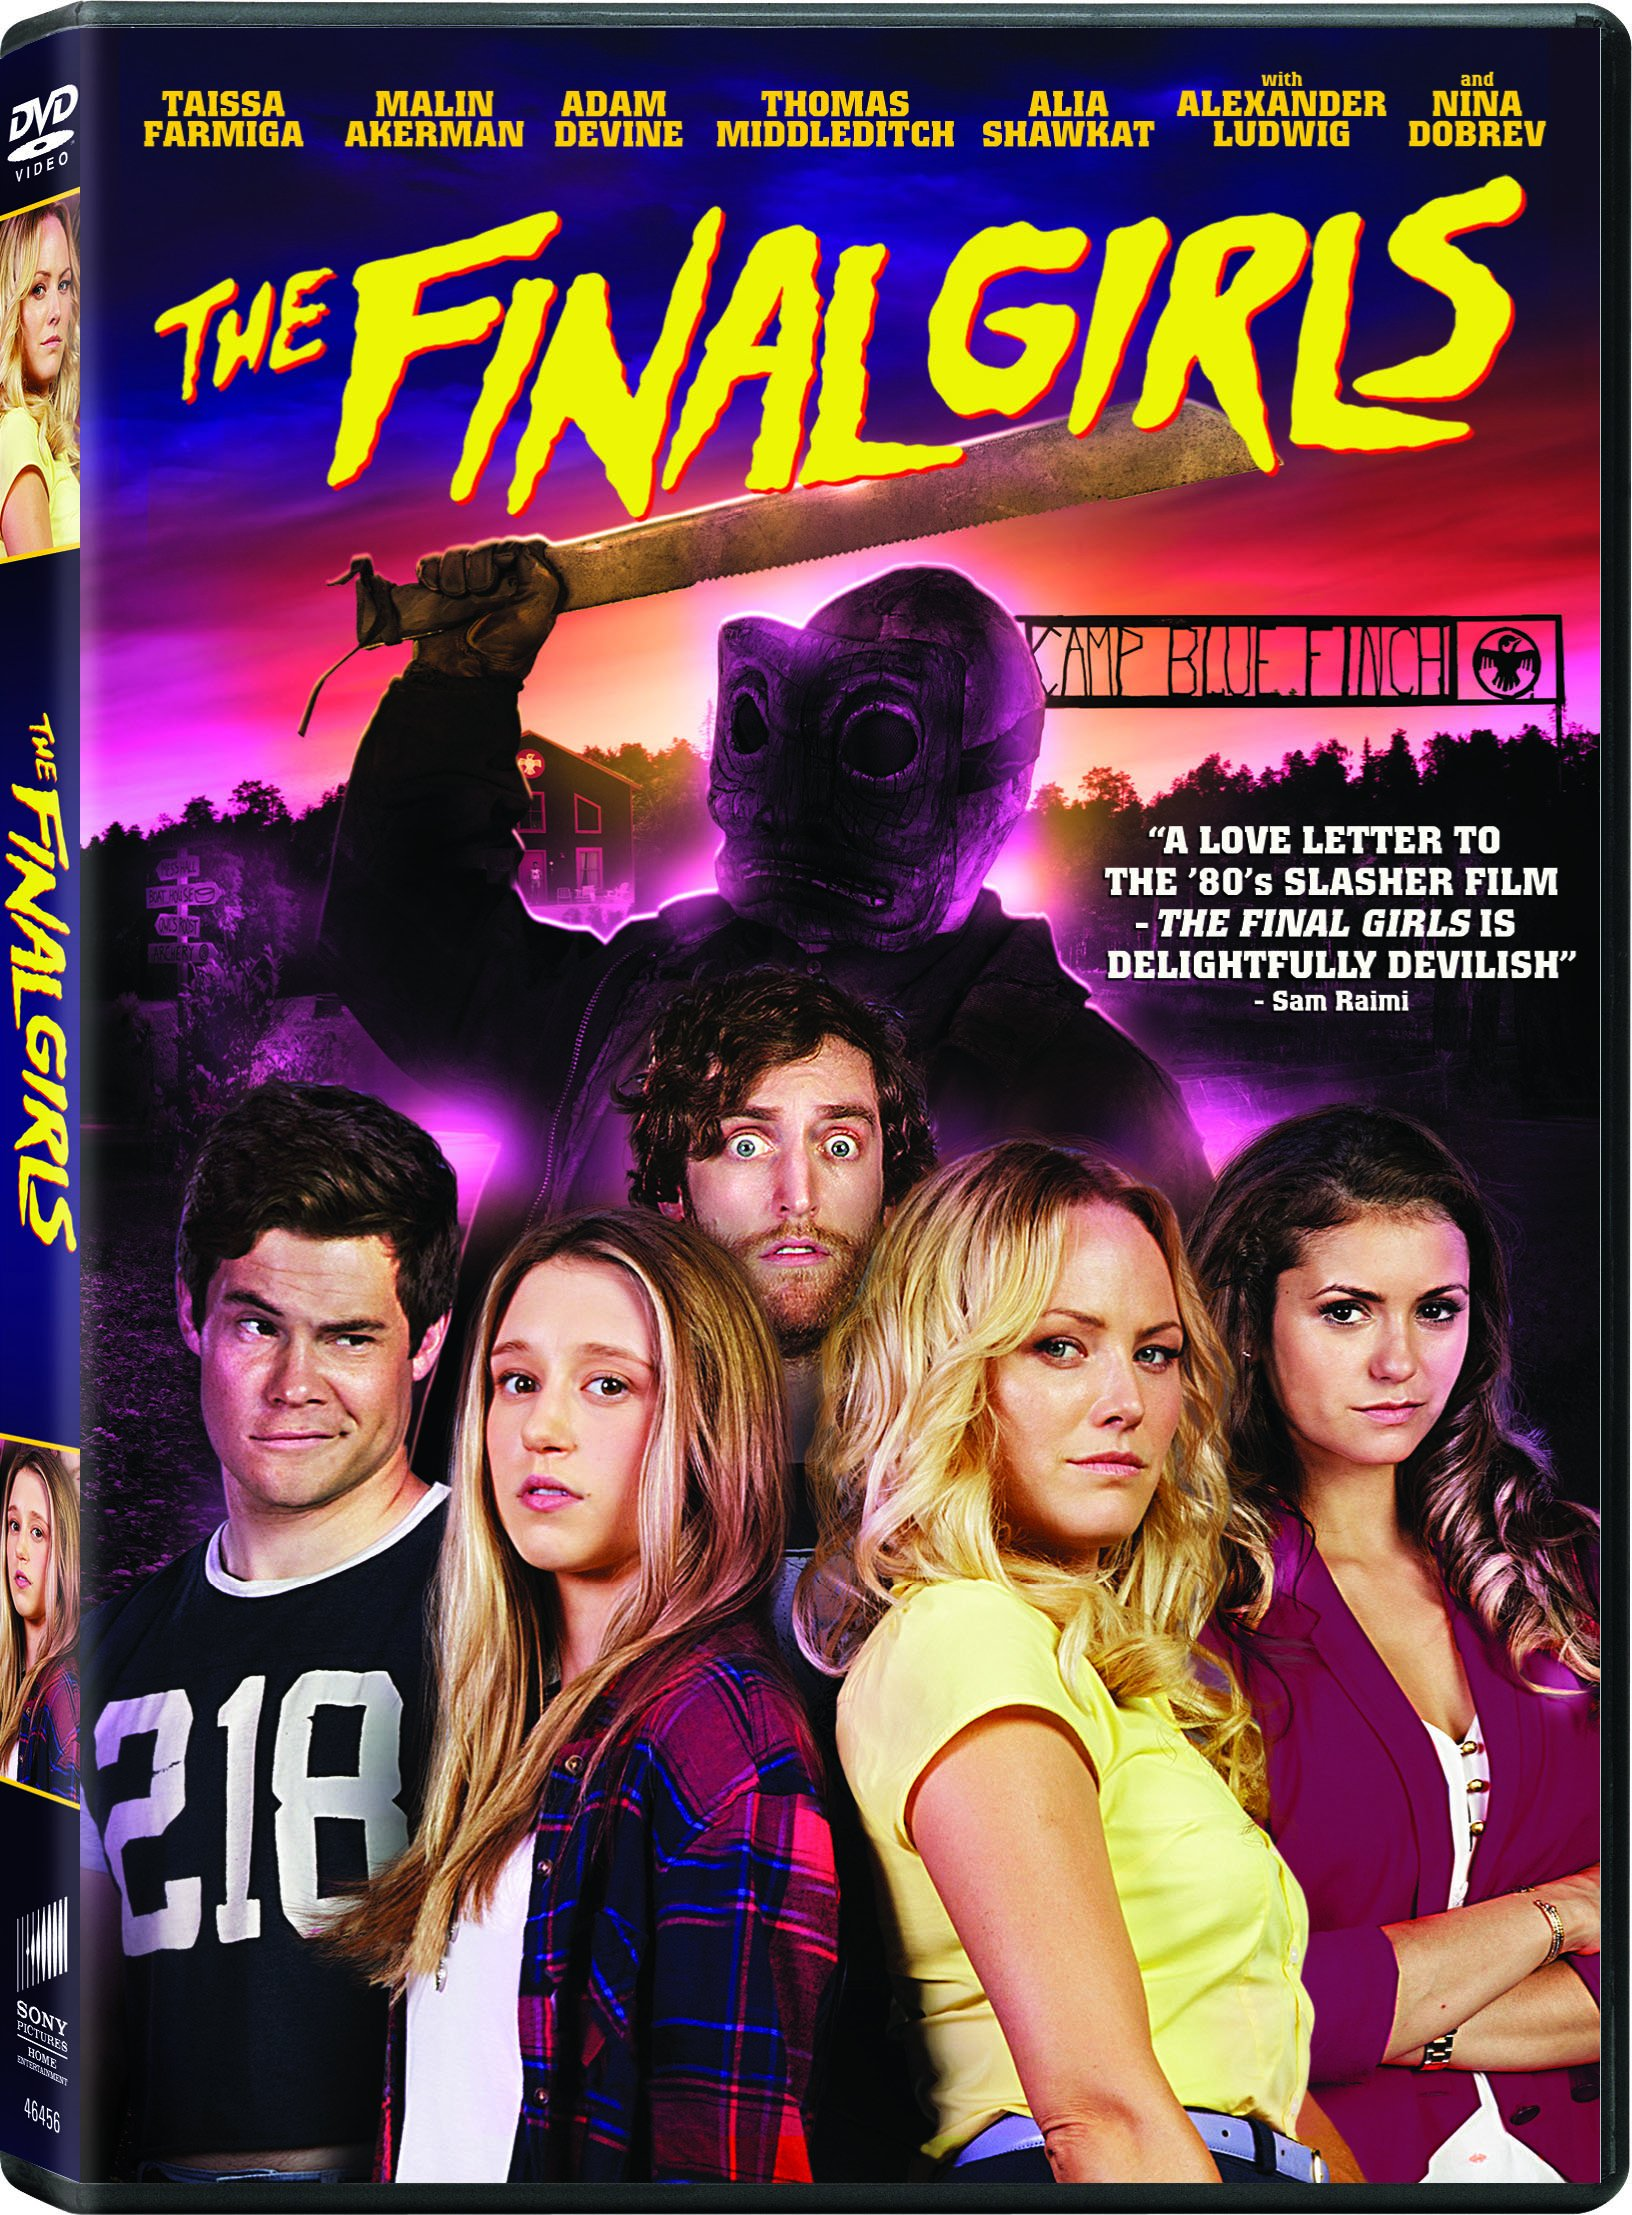 DVD : The Final Girls (Widescreen, Dolby, AC-3)